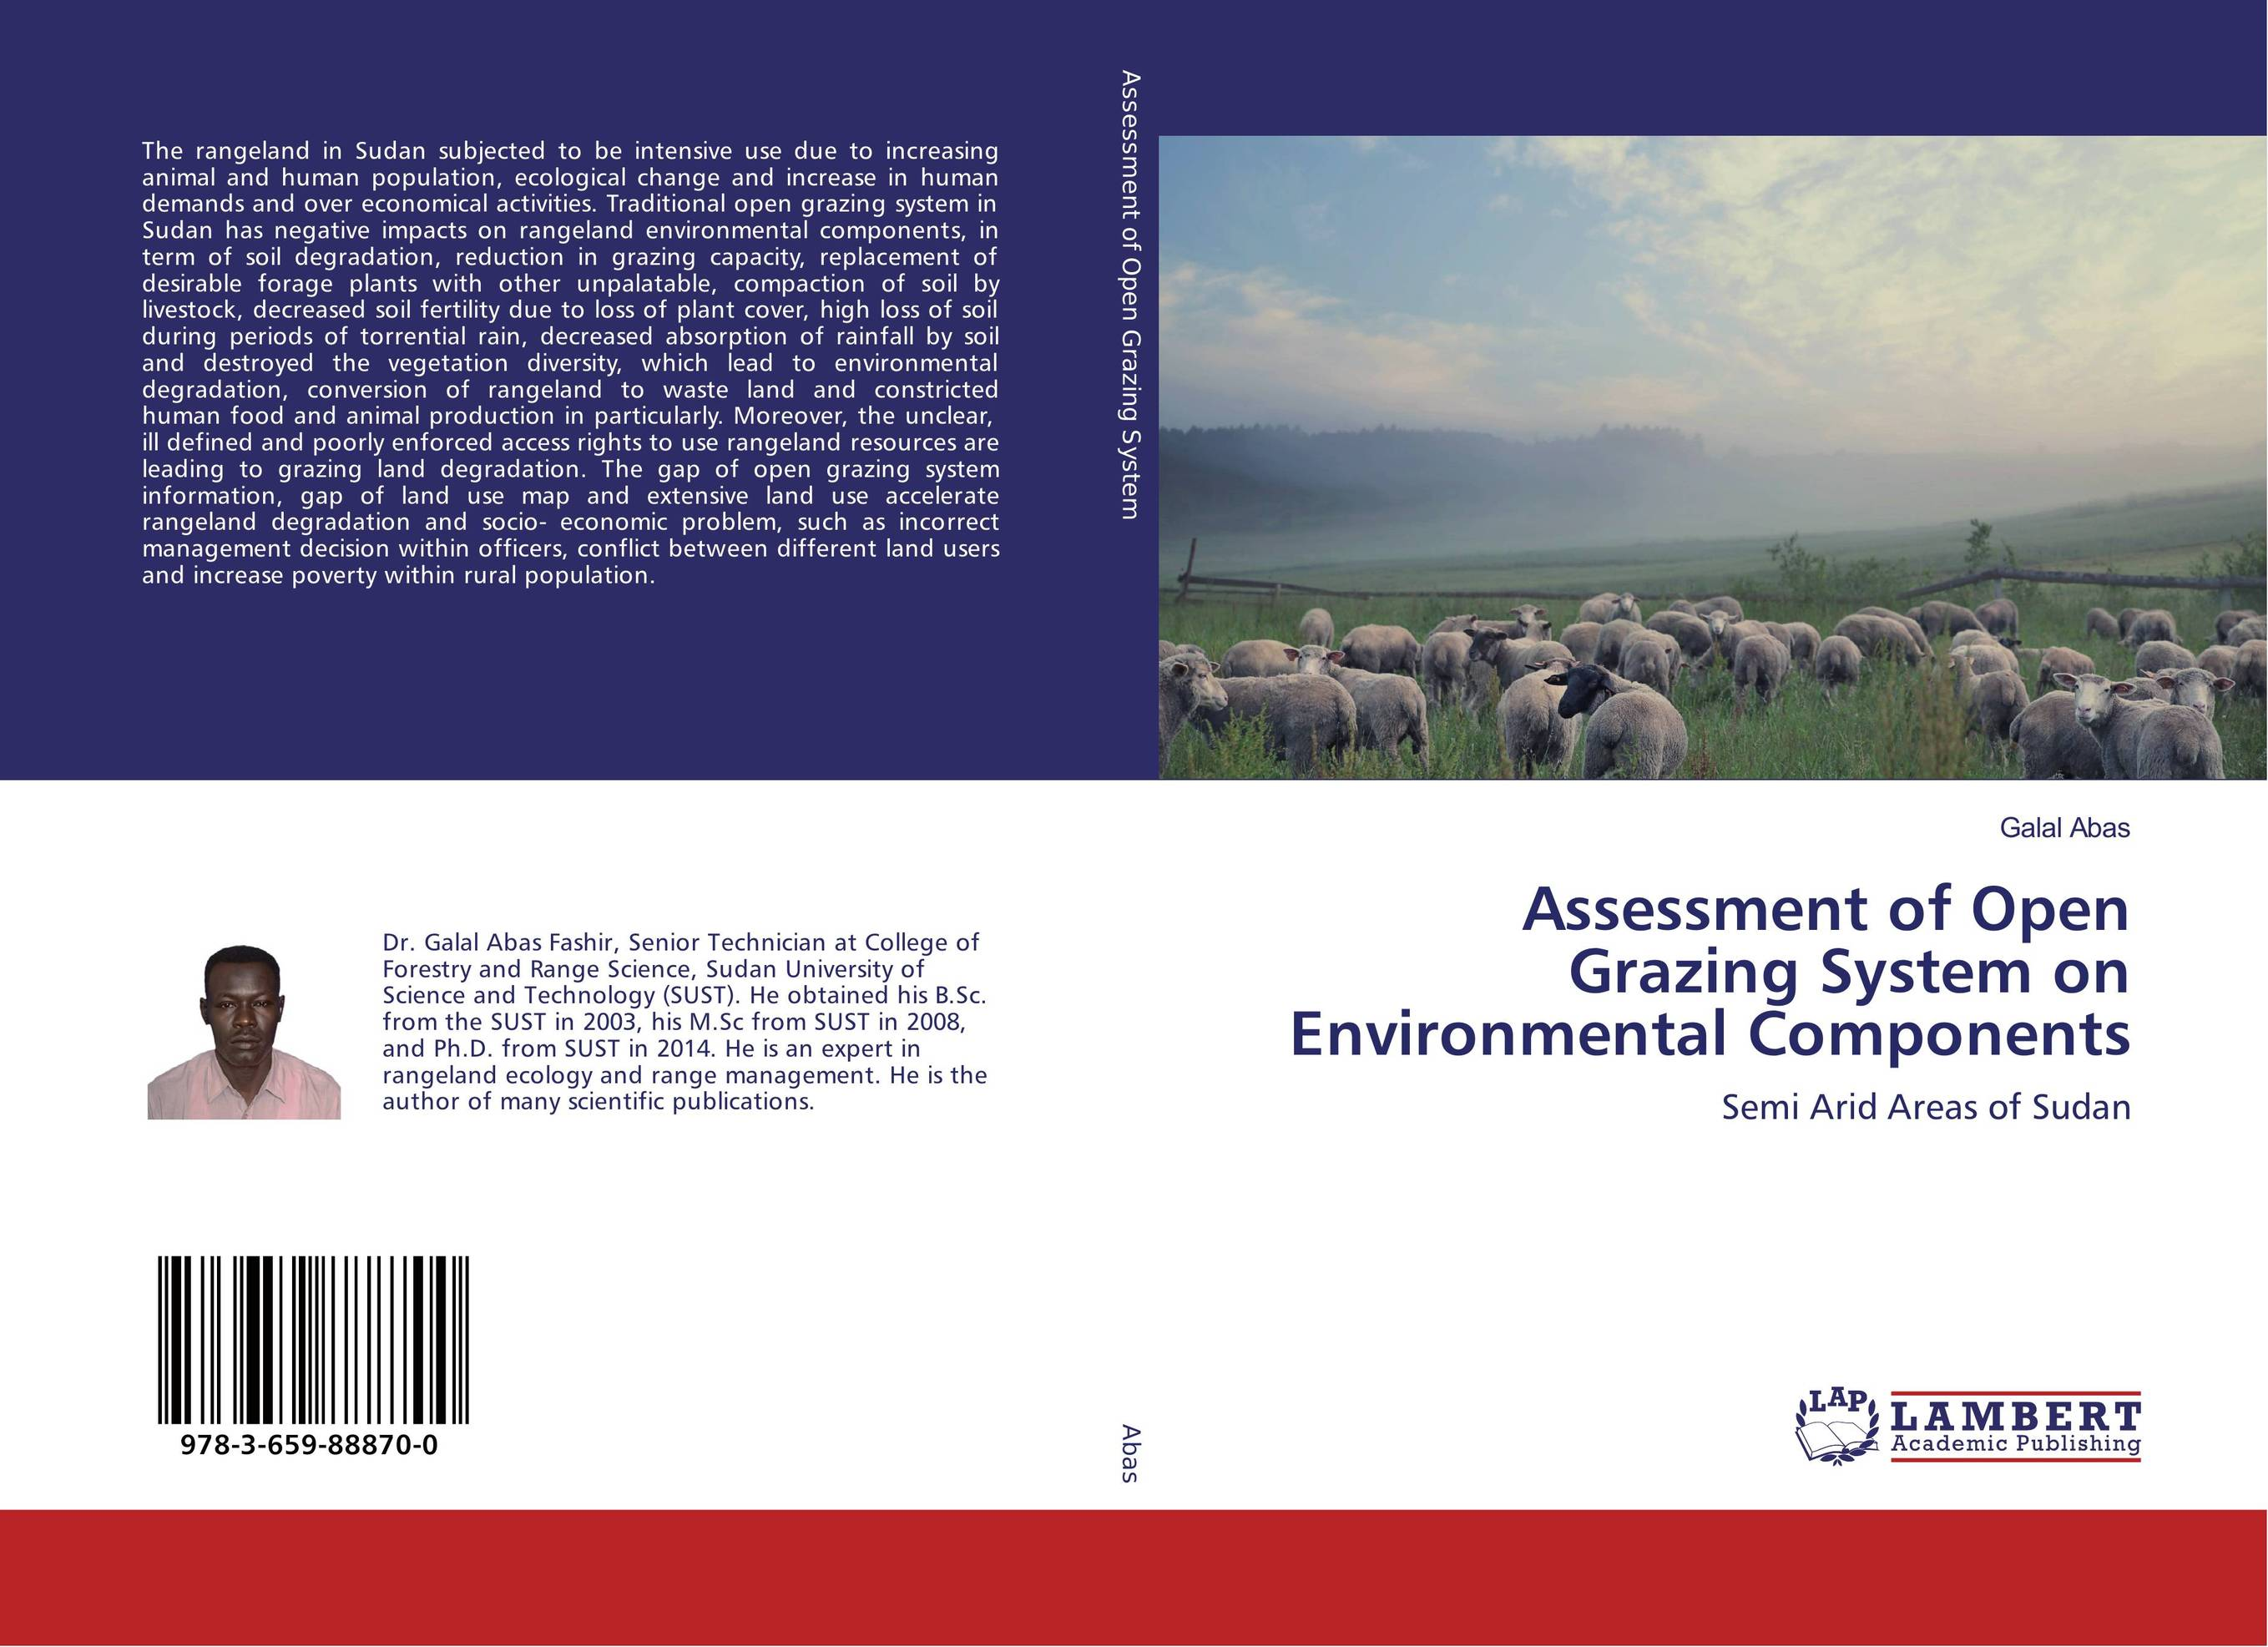 Assessment of Open Grazing System on Environmental Components an economic analysis of the environmental impacts of livestock grazing